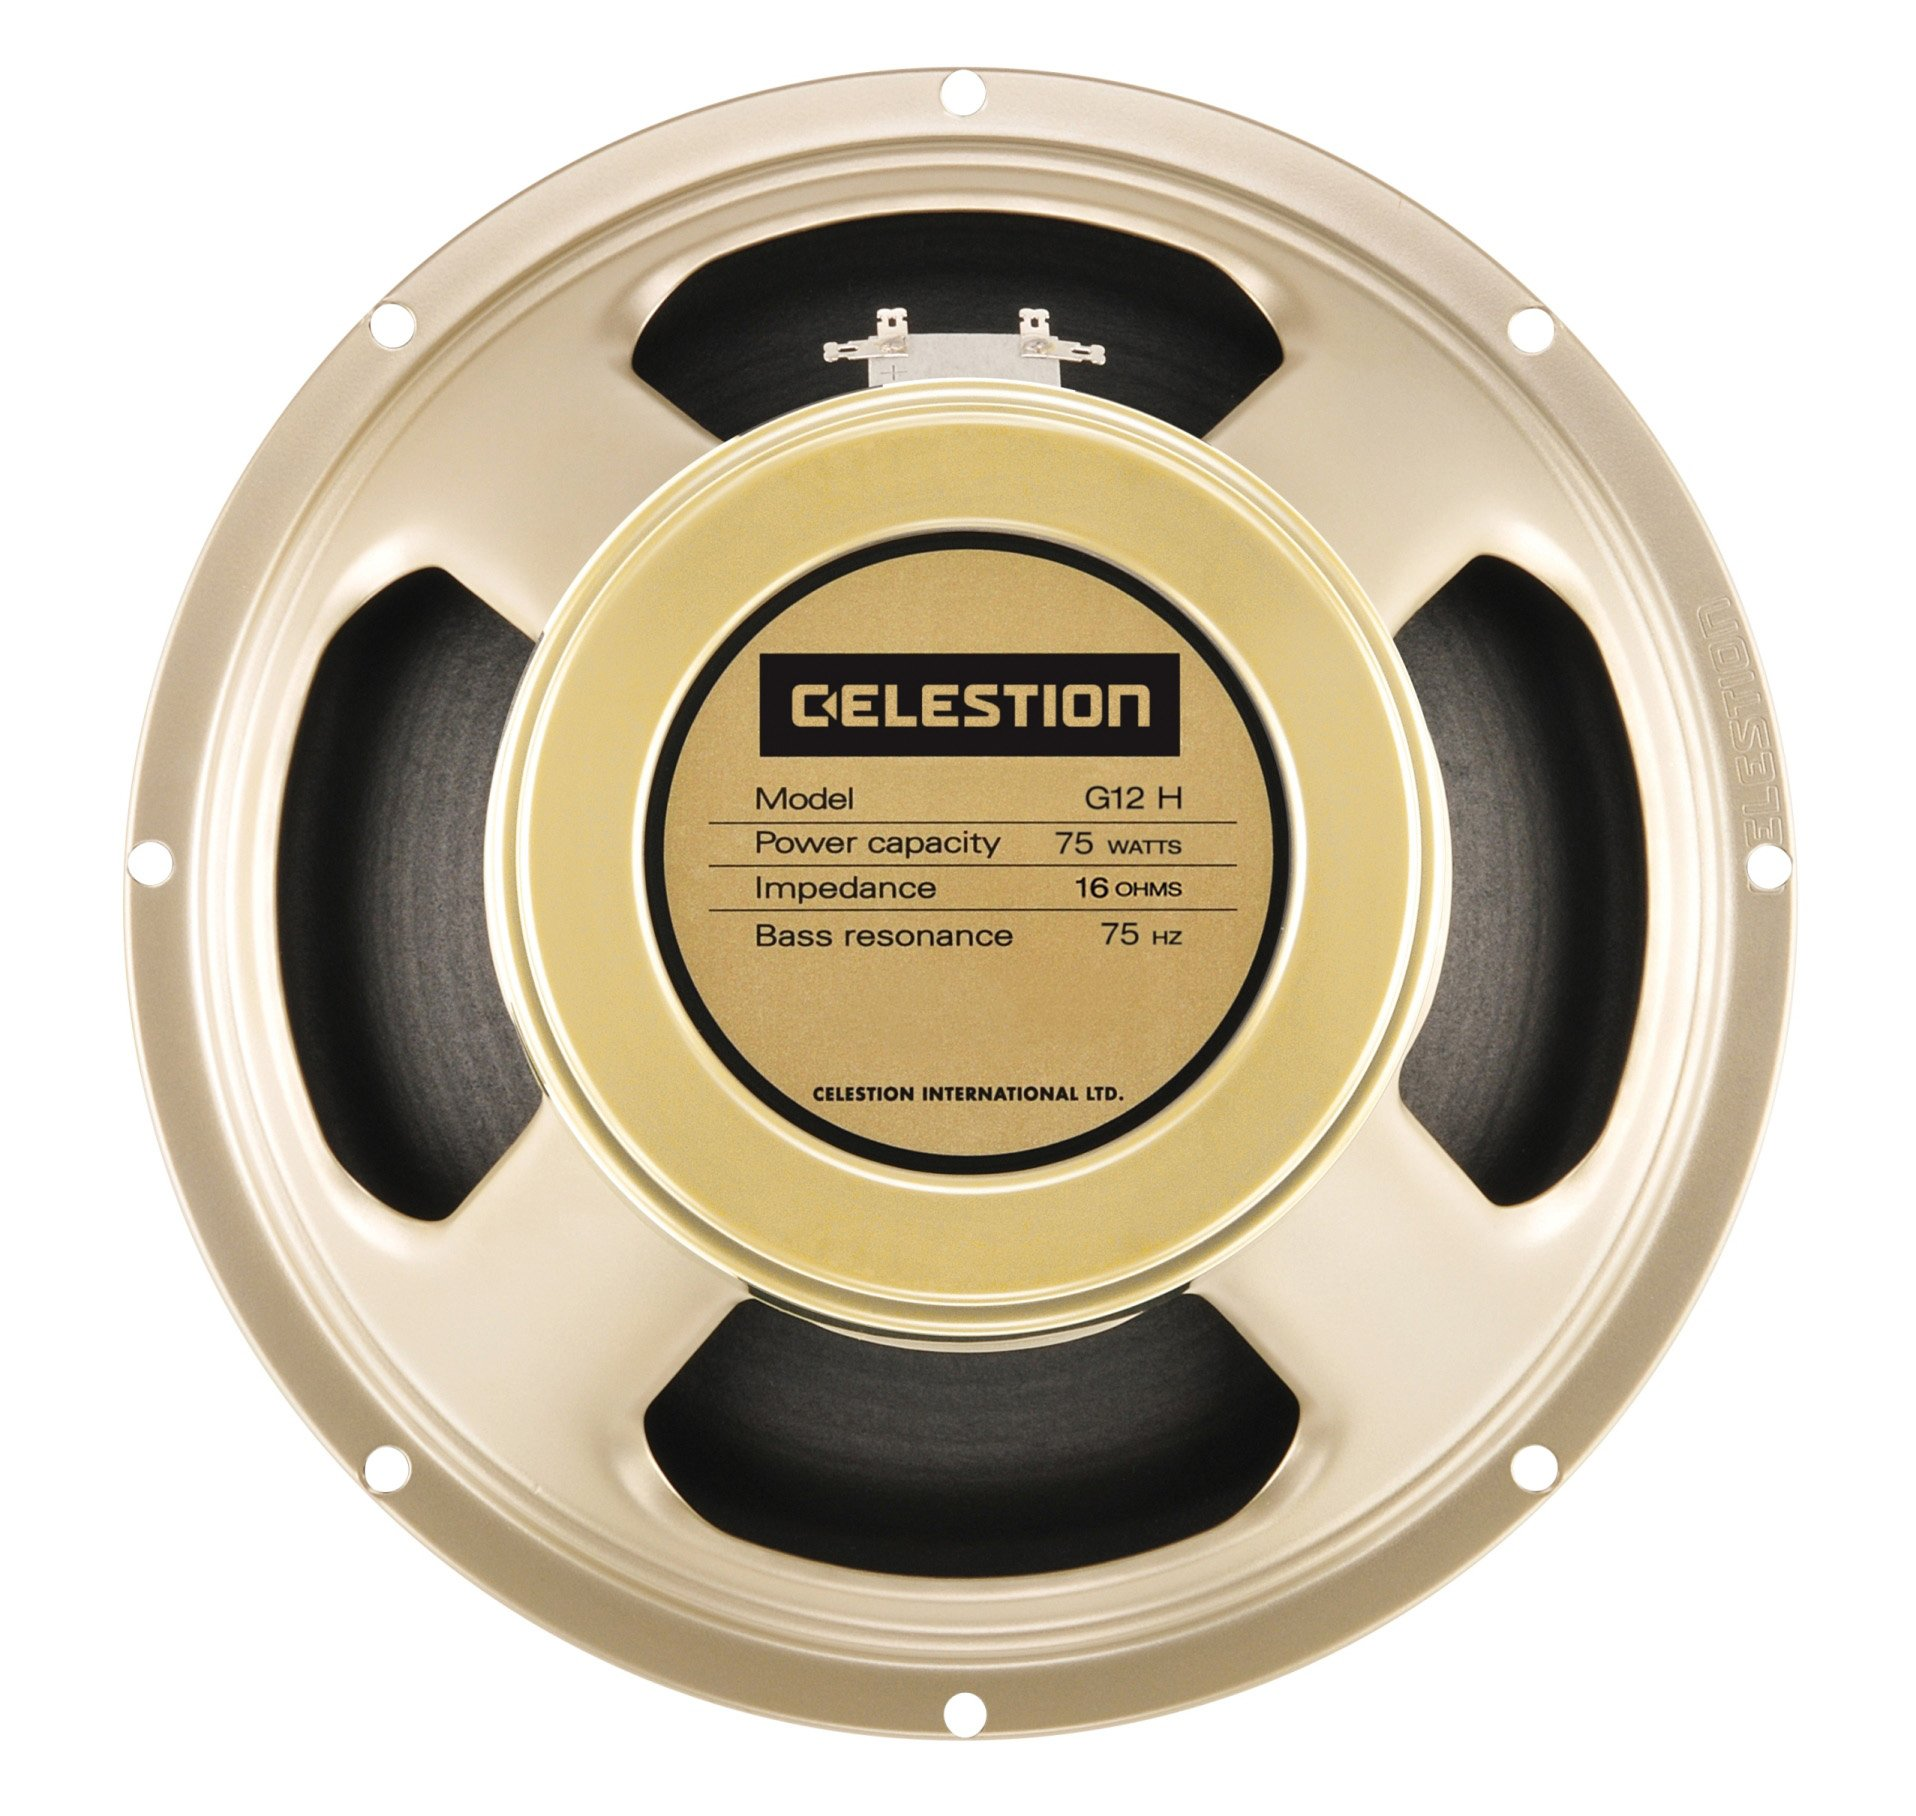 CELESTION G12H-75 Creamback, 12-Inch 75W 16ohm guitar speaker